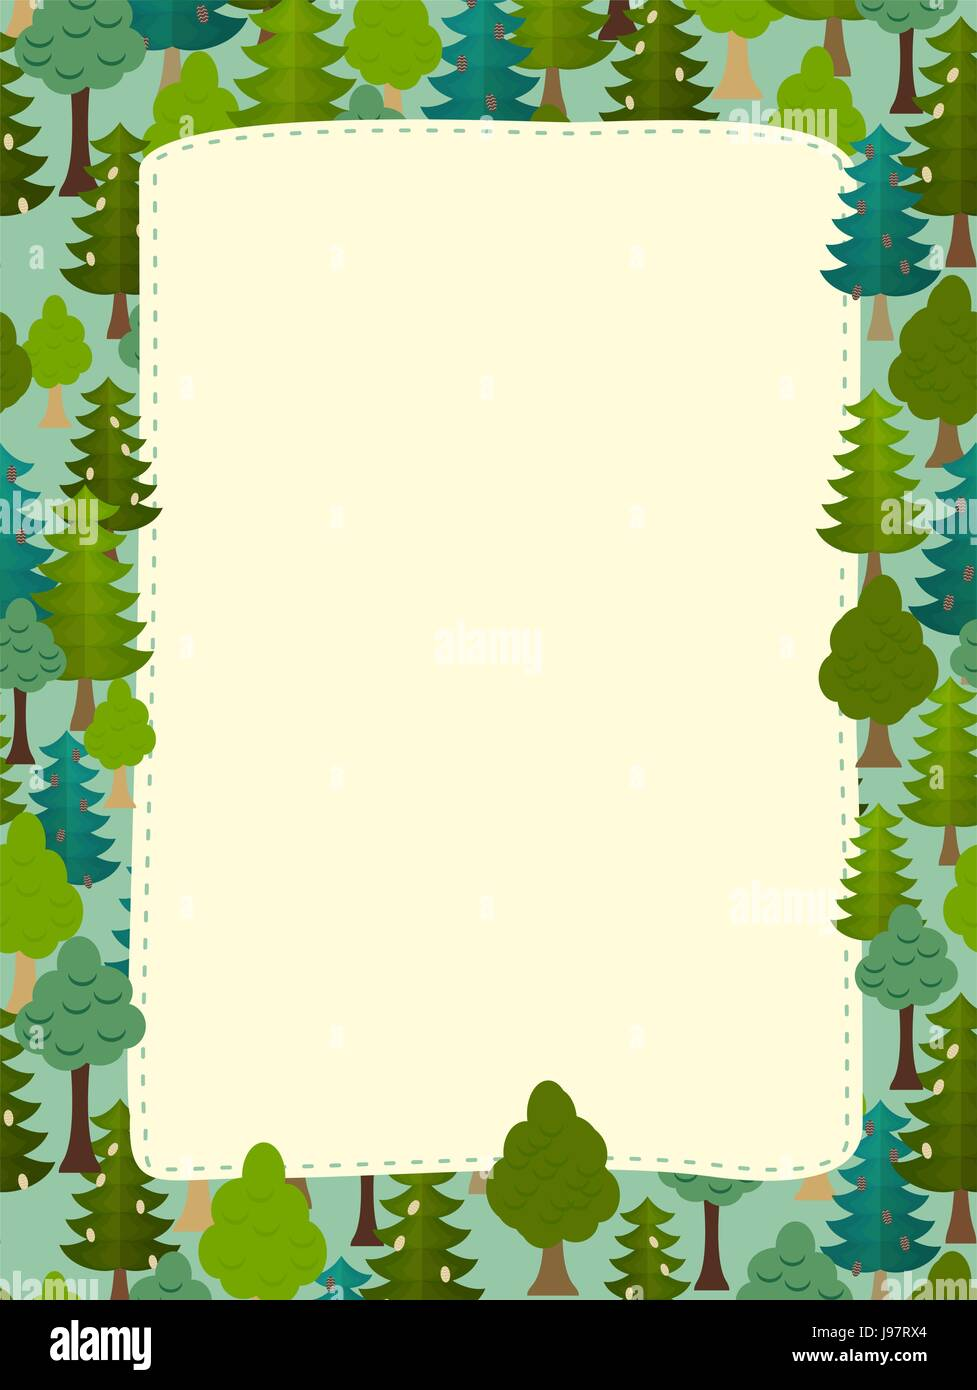 conifers pattern. Background of trees. Earth day Template with space for text - Stock Vector